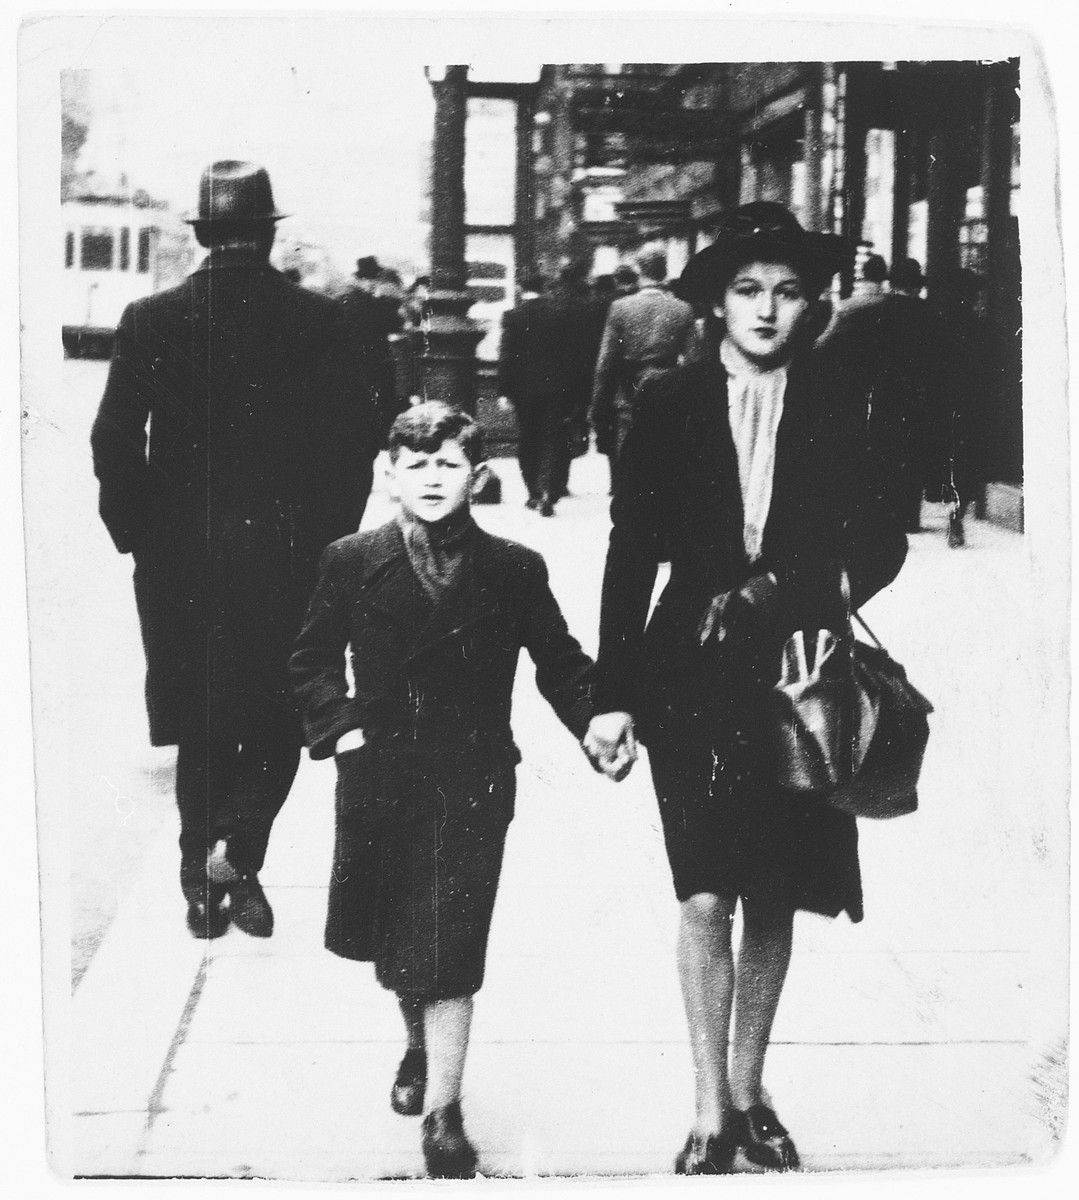 A Jewish brother and sister walk along a street in Brussels, Belgium.  Pictured are Henri and Clara.  This is Henri's last photograph of his sister prior to her arrest and deportation.